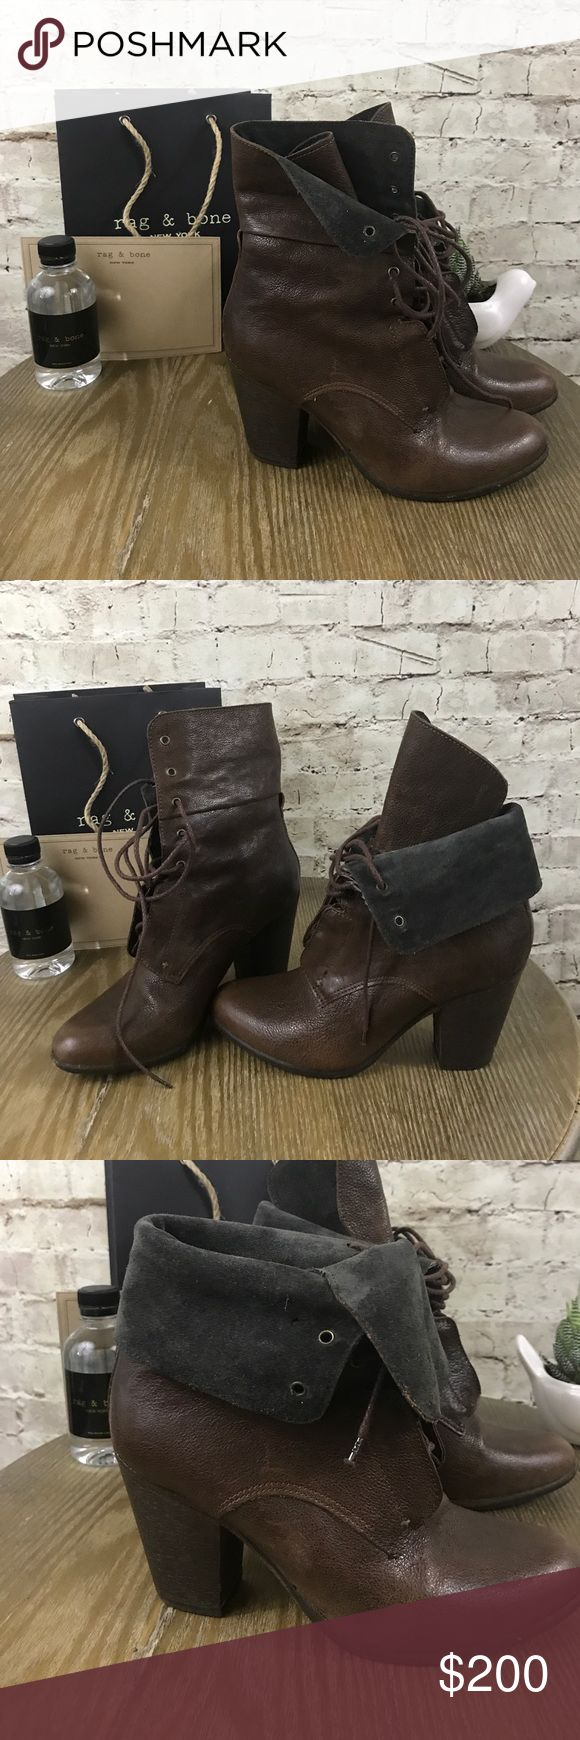 "Rag and Bone Deacon  tall lace up boots Authentic . Rare Rag and Bone boots. Great condition. Amazing boots. Extremely comfortable. A couple minor scratches. Approx. heel height: 3"". Approx. boot shaft height: 6 1/2"". Leather upper, lining and sole. Made in Italy. Salon Shoes rag & bone Shoes Lace Up Boots"